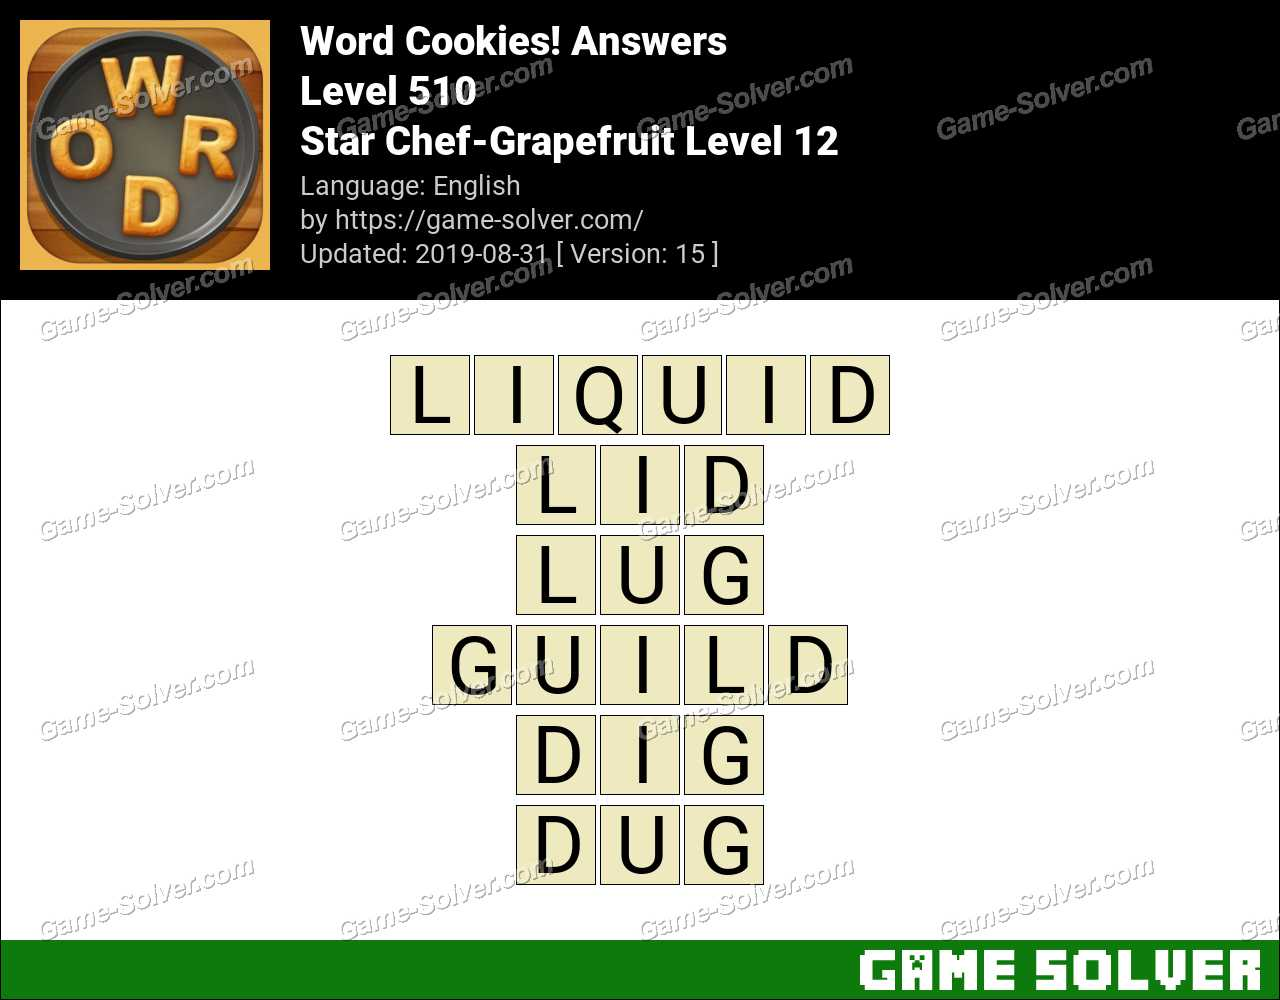 Word Cookies Star Chef-Grapefruit Level 12 Answers